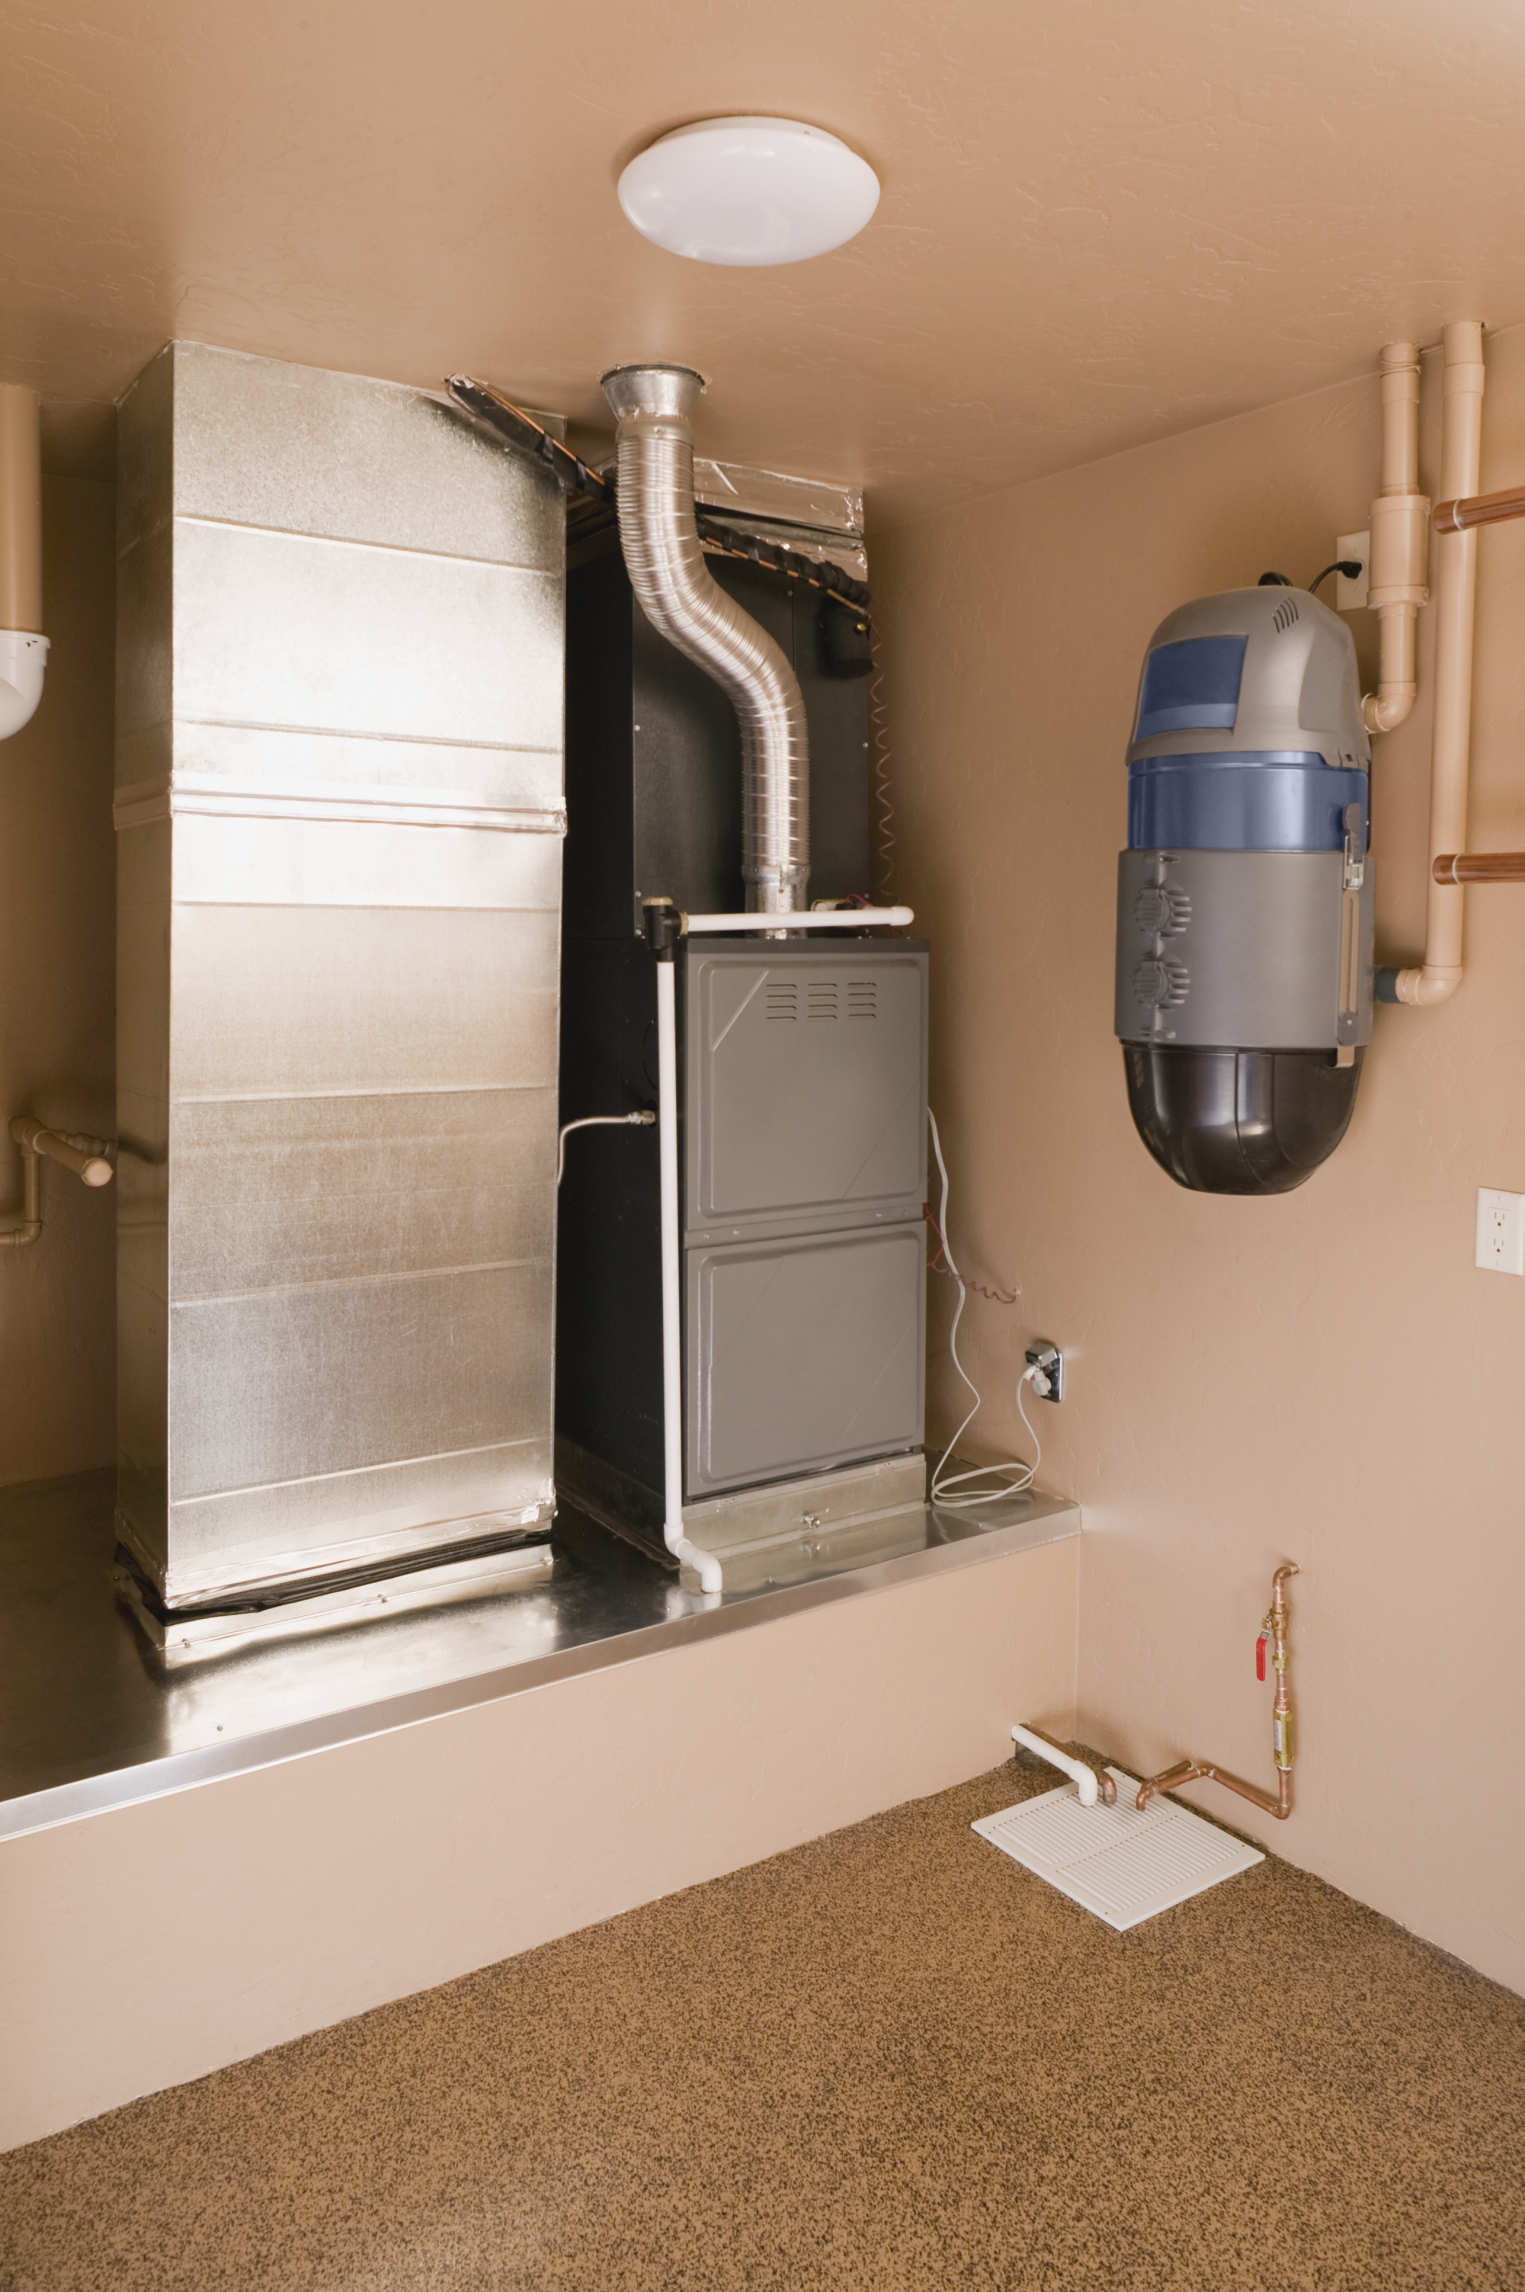 Garage Heater Placement How To Troubleshoot A Furnace Blower That Runs No Heat